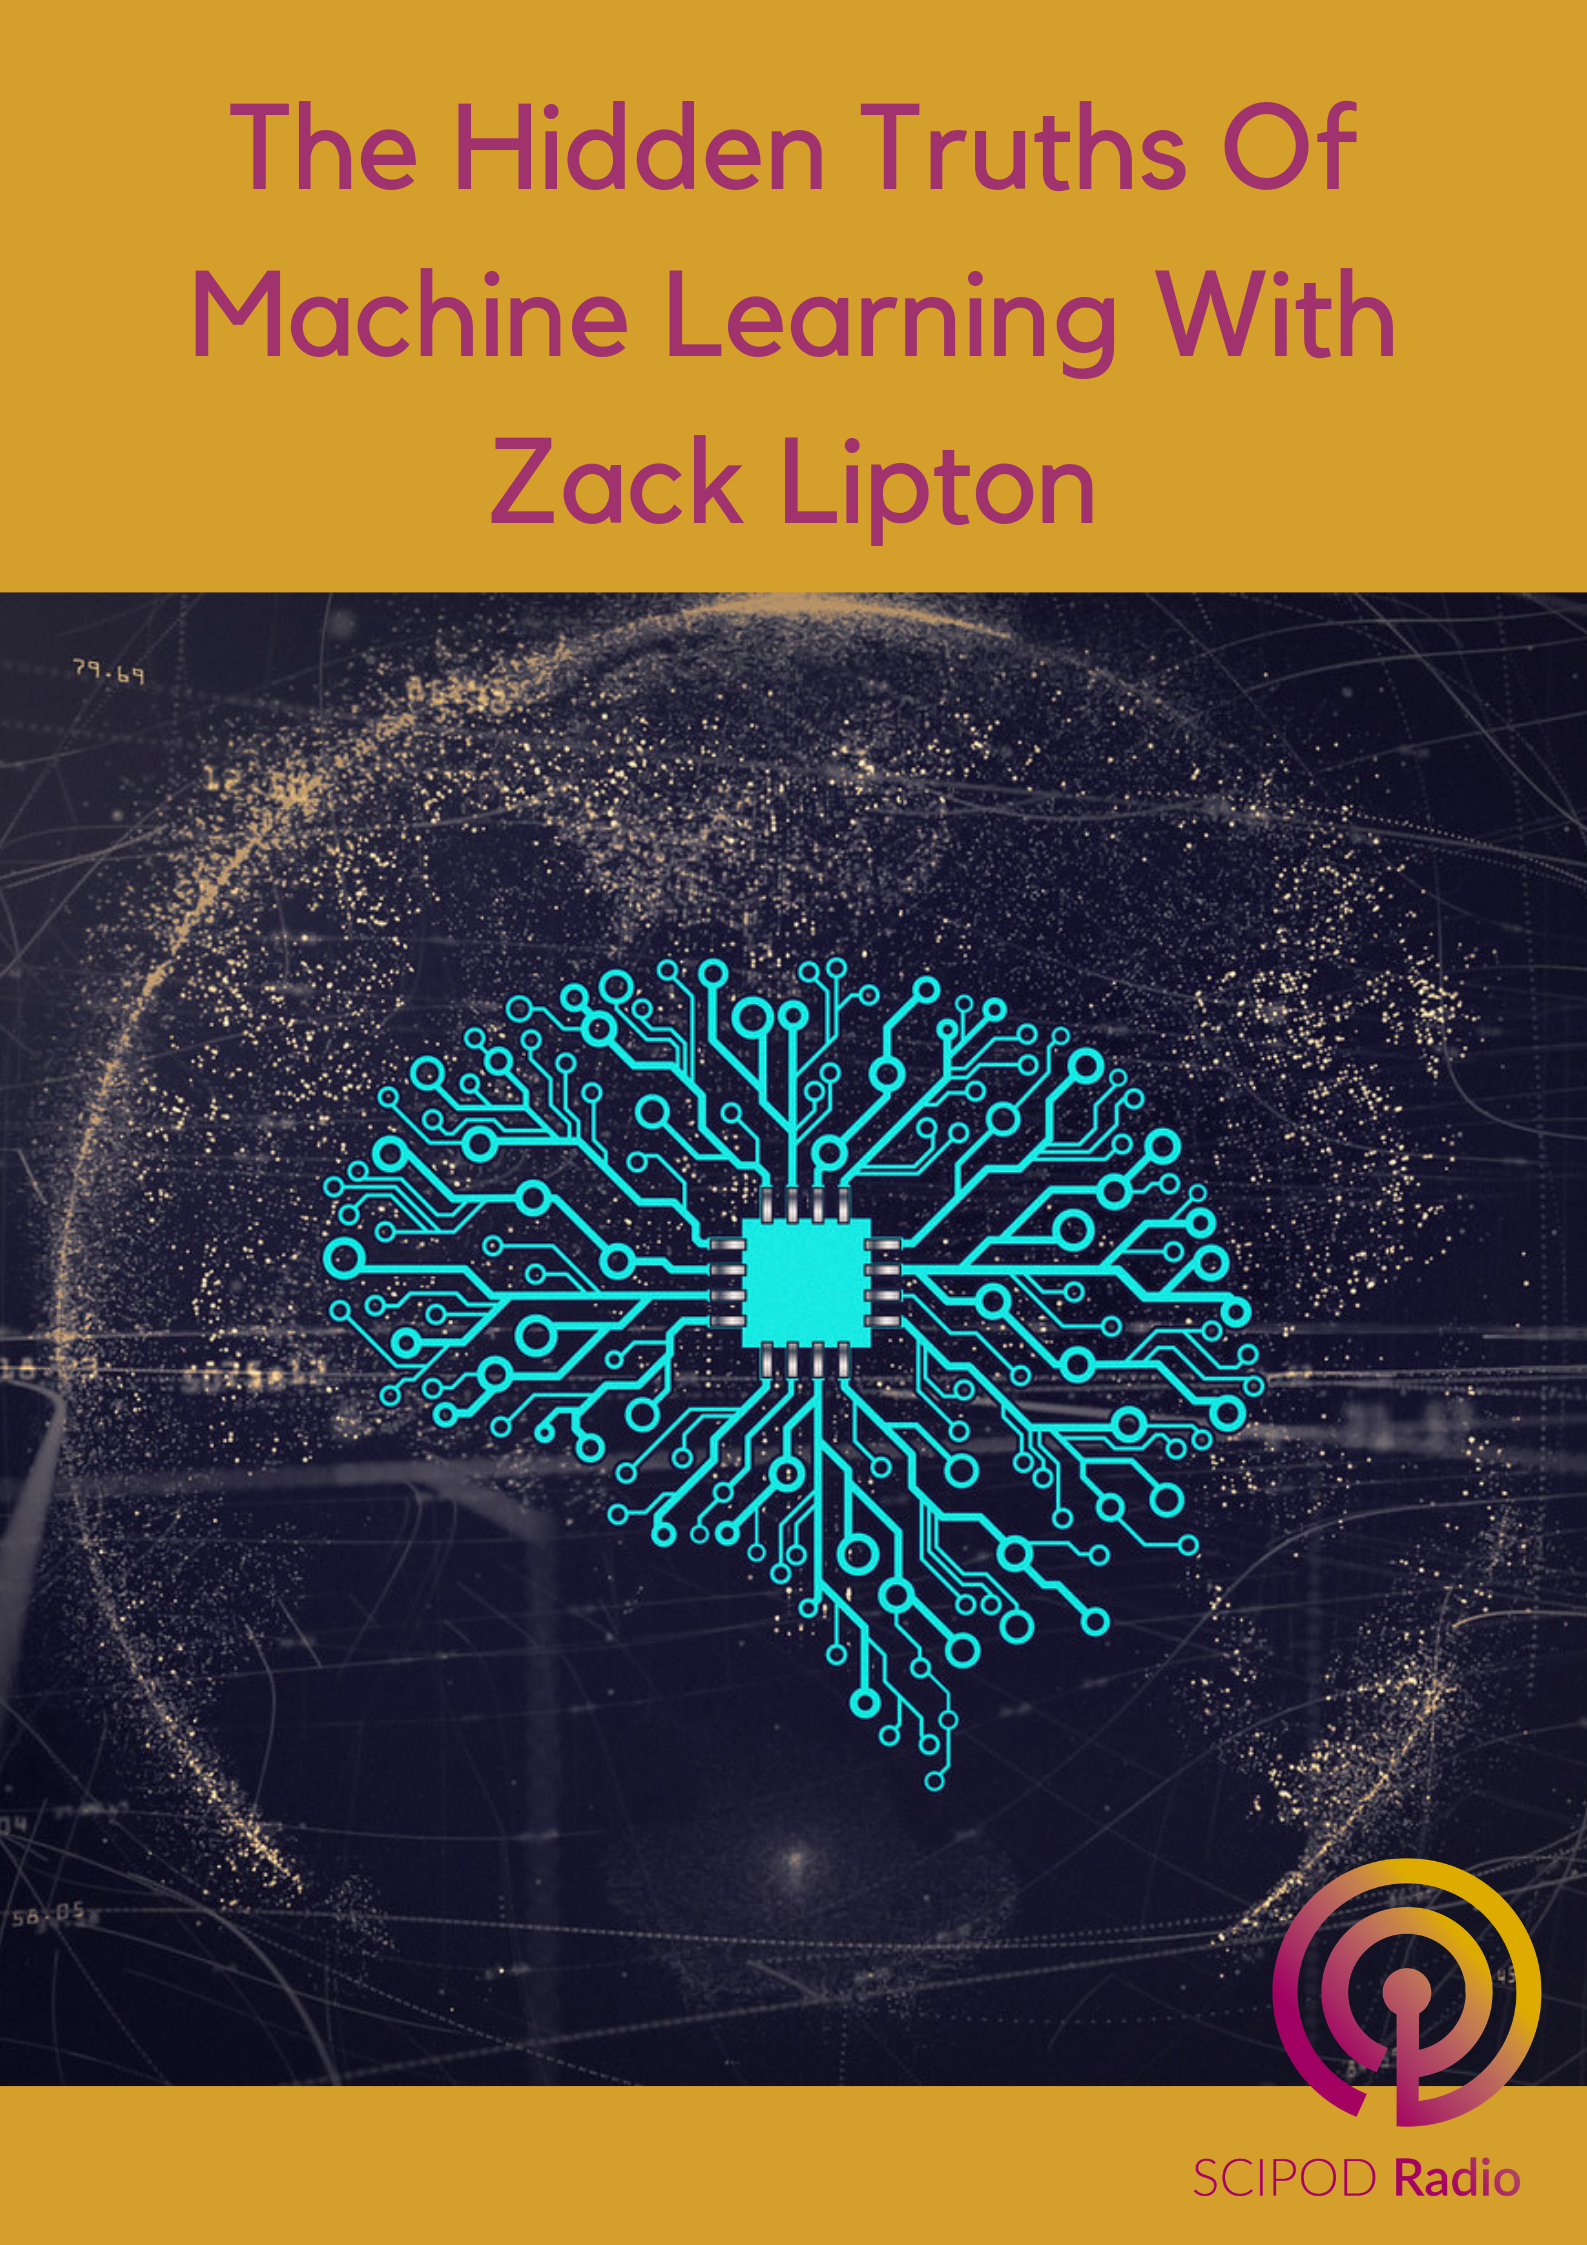 The Hidden Truths Of Machine Learning With Zack Lipton